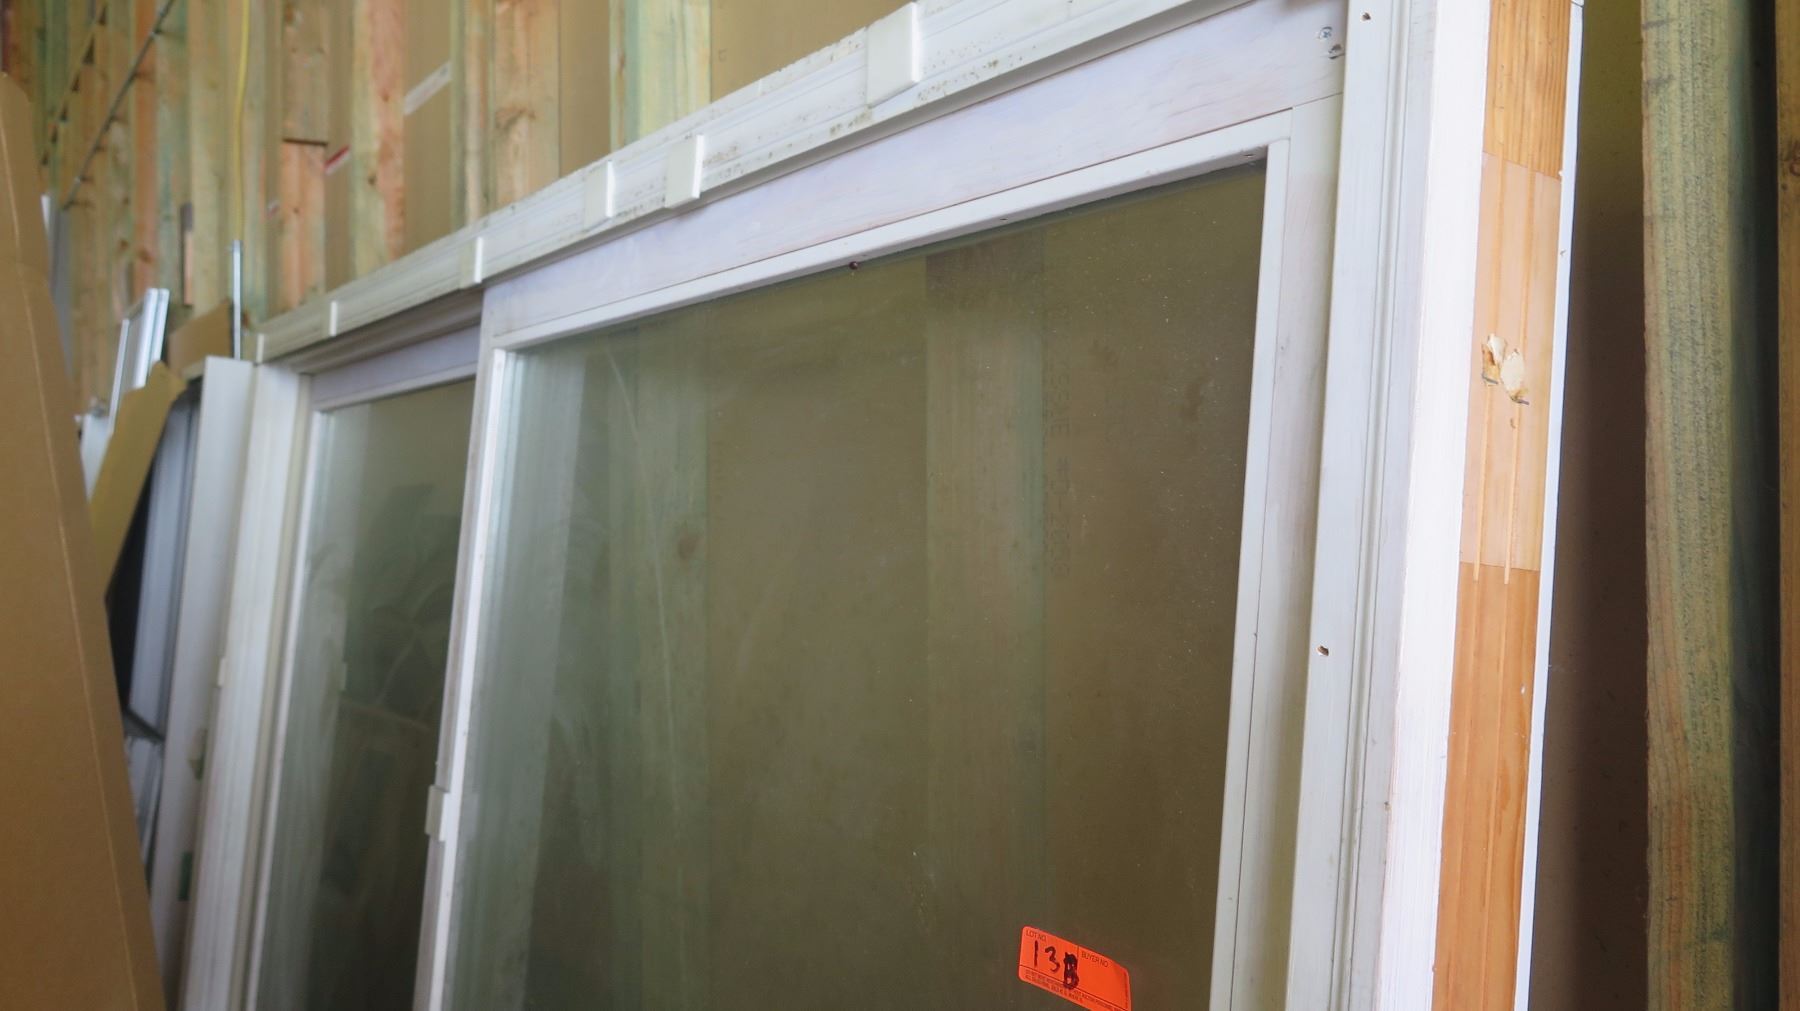 Patio Sliding Glass Door  White Tempered Clear Laminated Glass 79 x 9258 1500 Retail